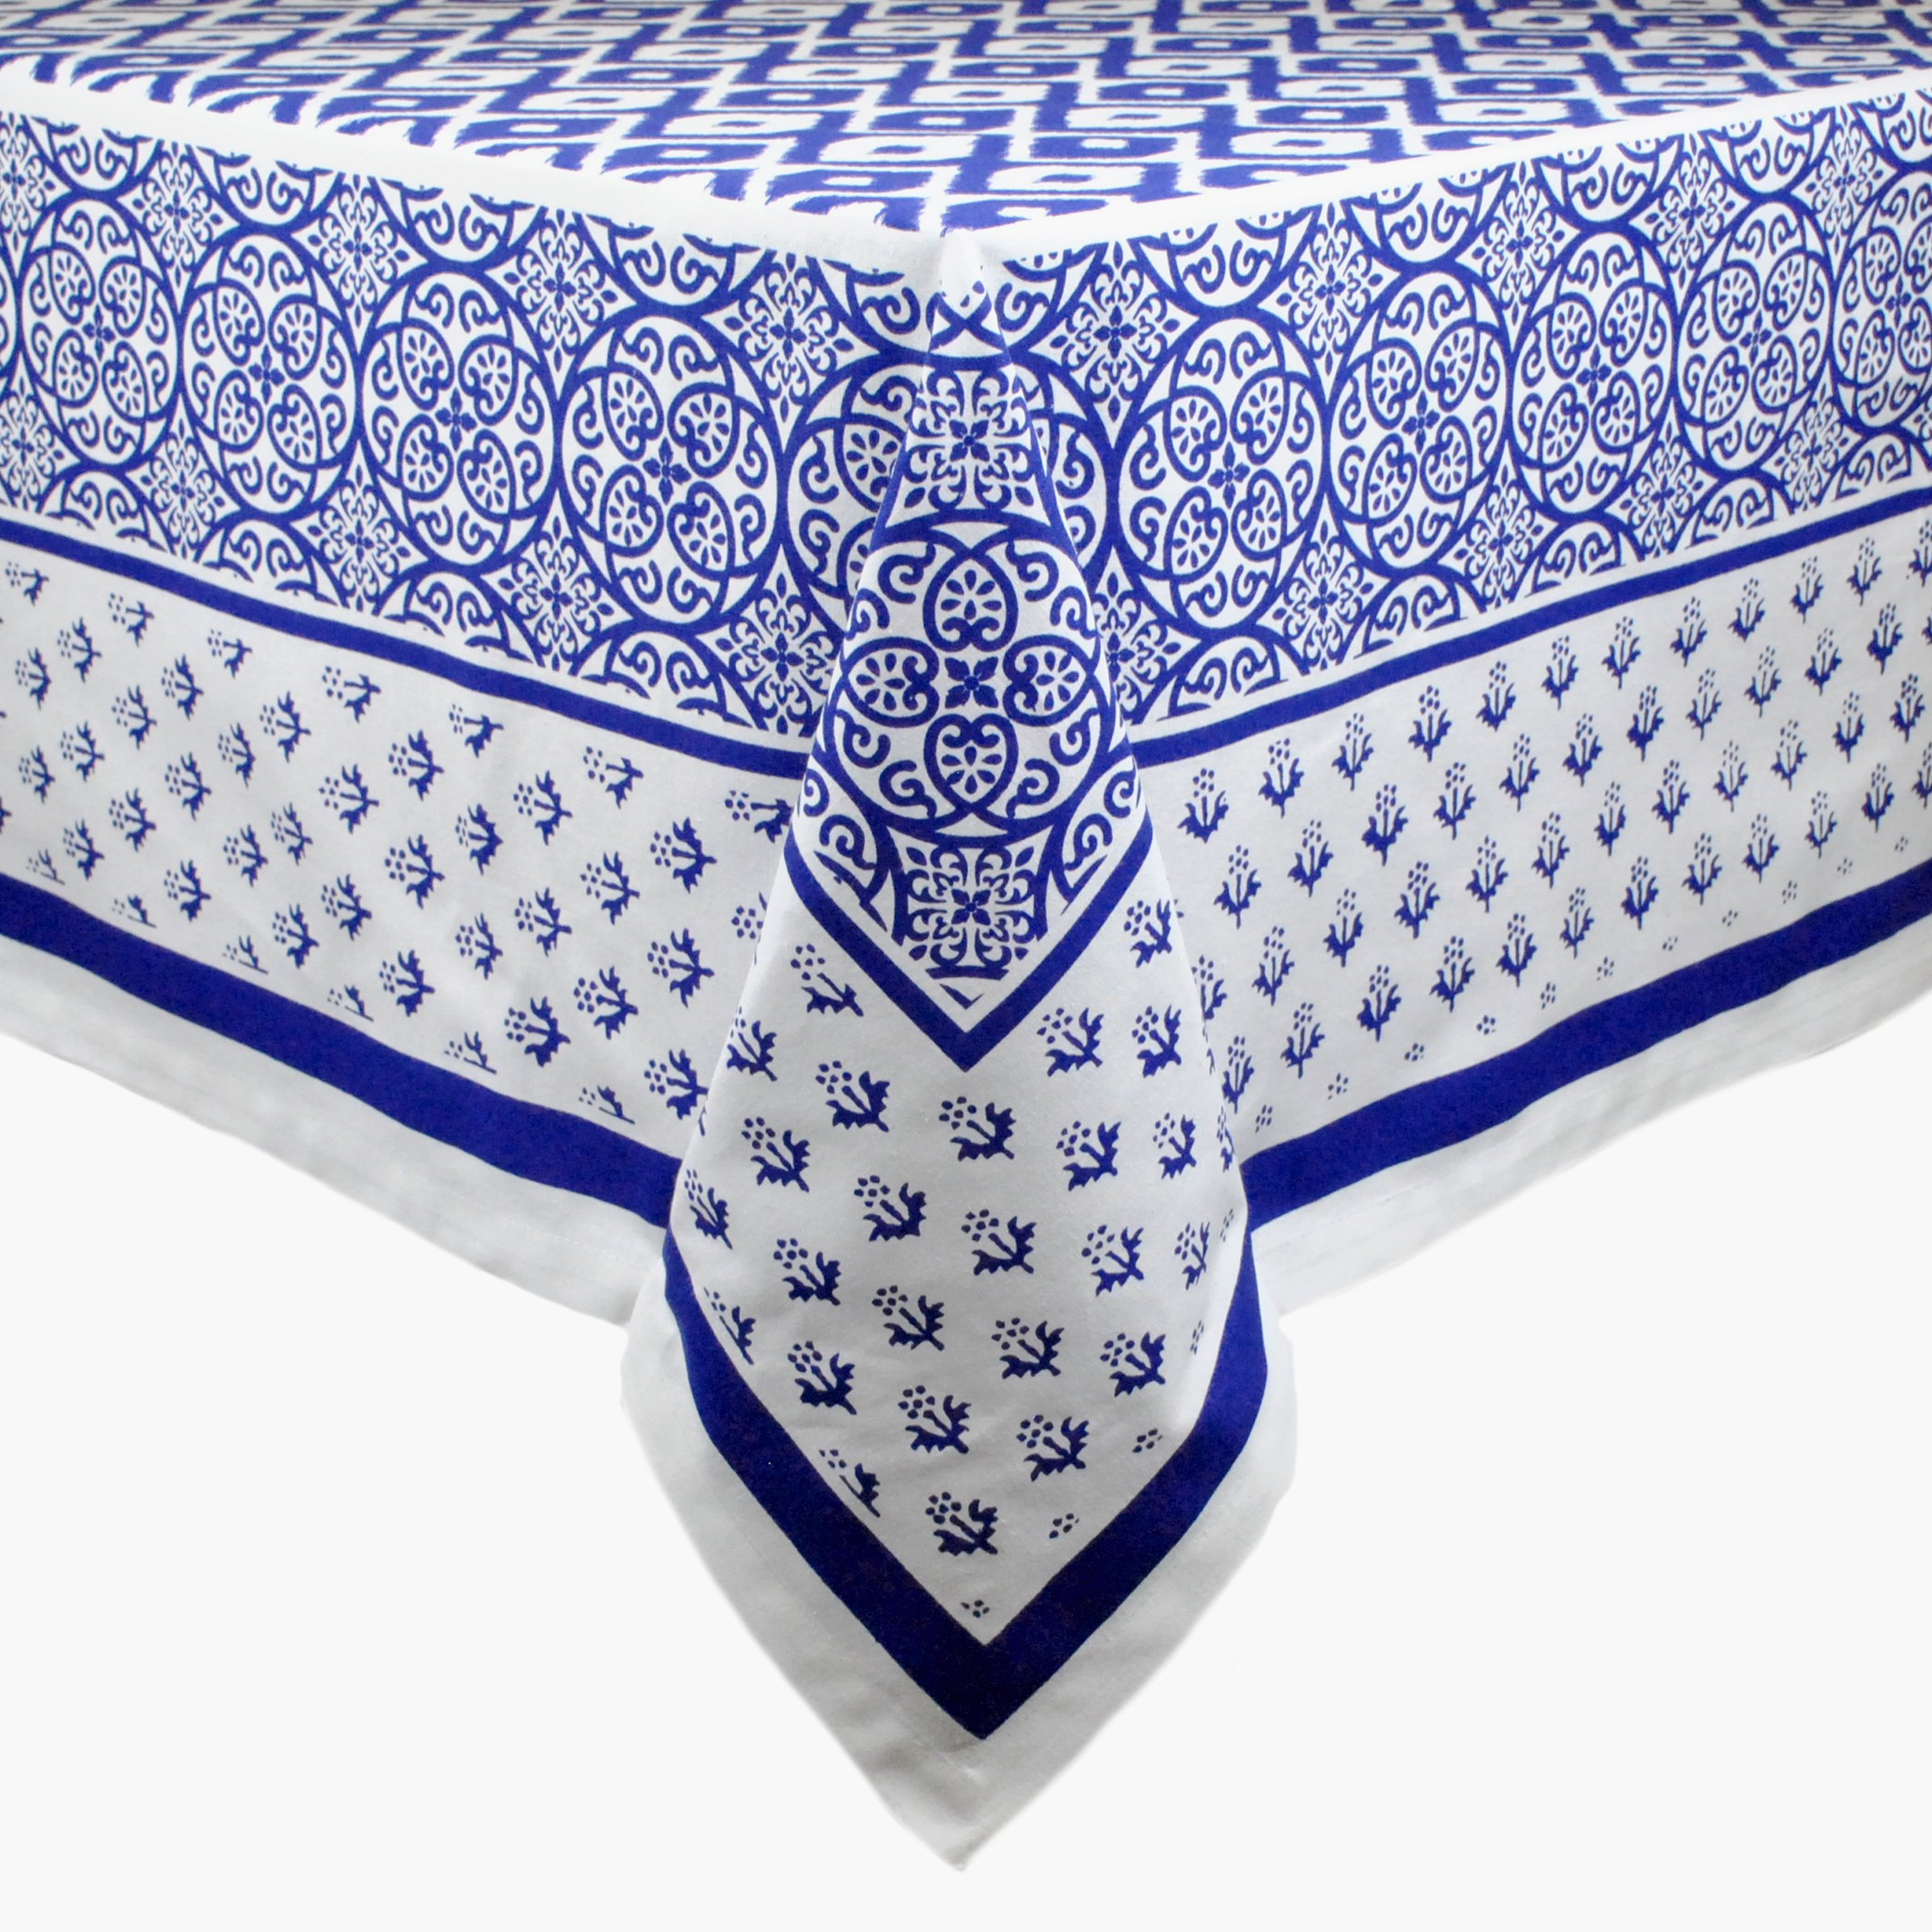 DII CAMZ10808 60x84 Rectangular Polyester Tablecloth, Tunisia Print - Perfect for Spring, Summer, Catering Events, Dinner Parties, Buffets, Weddings or Everyday Use, 60'' x 84'', Black